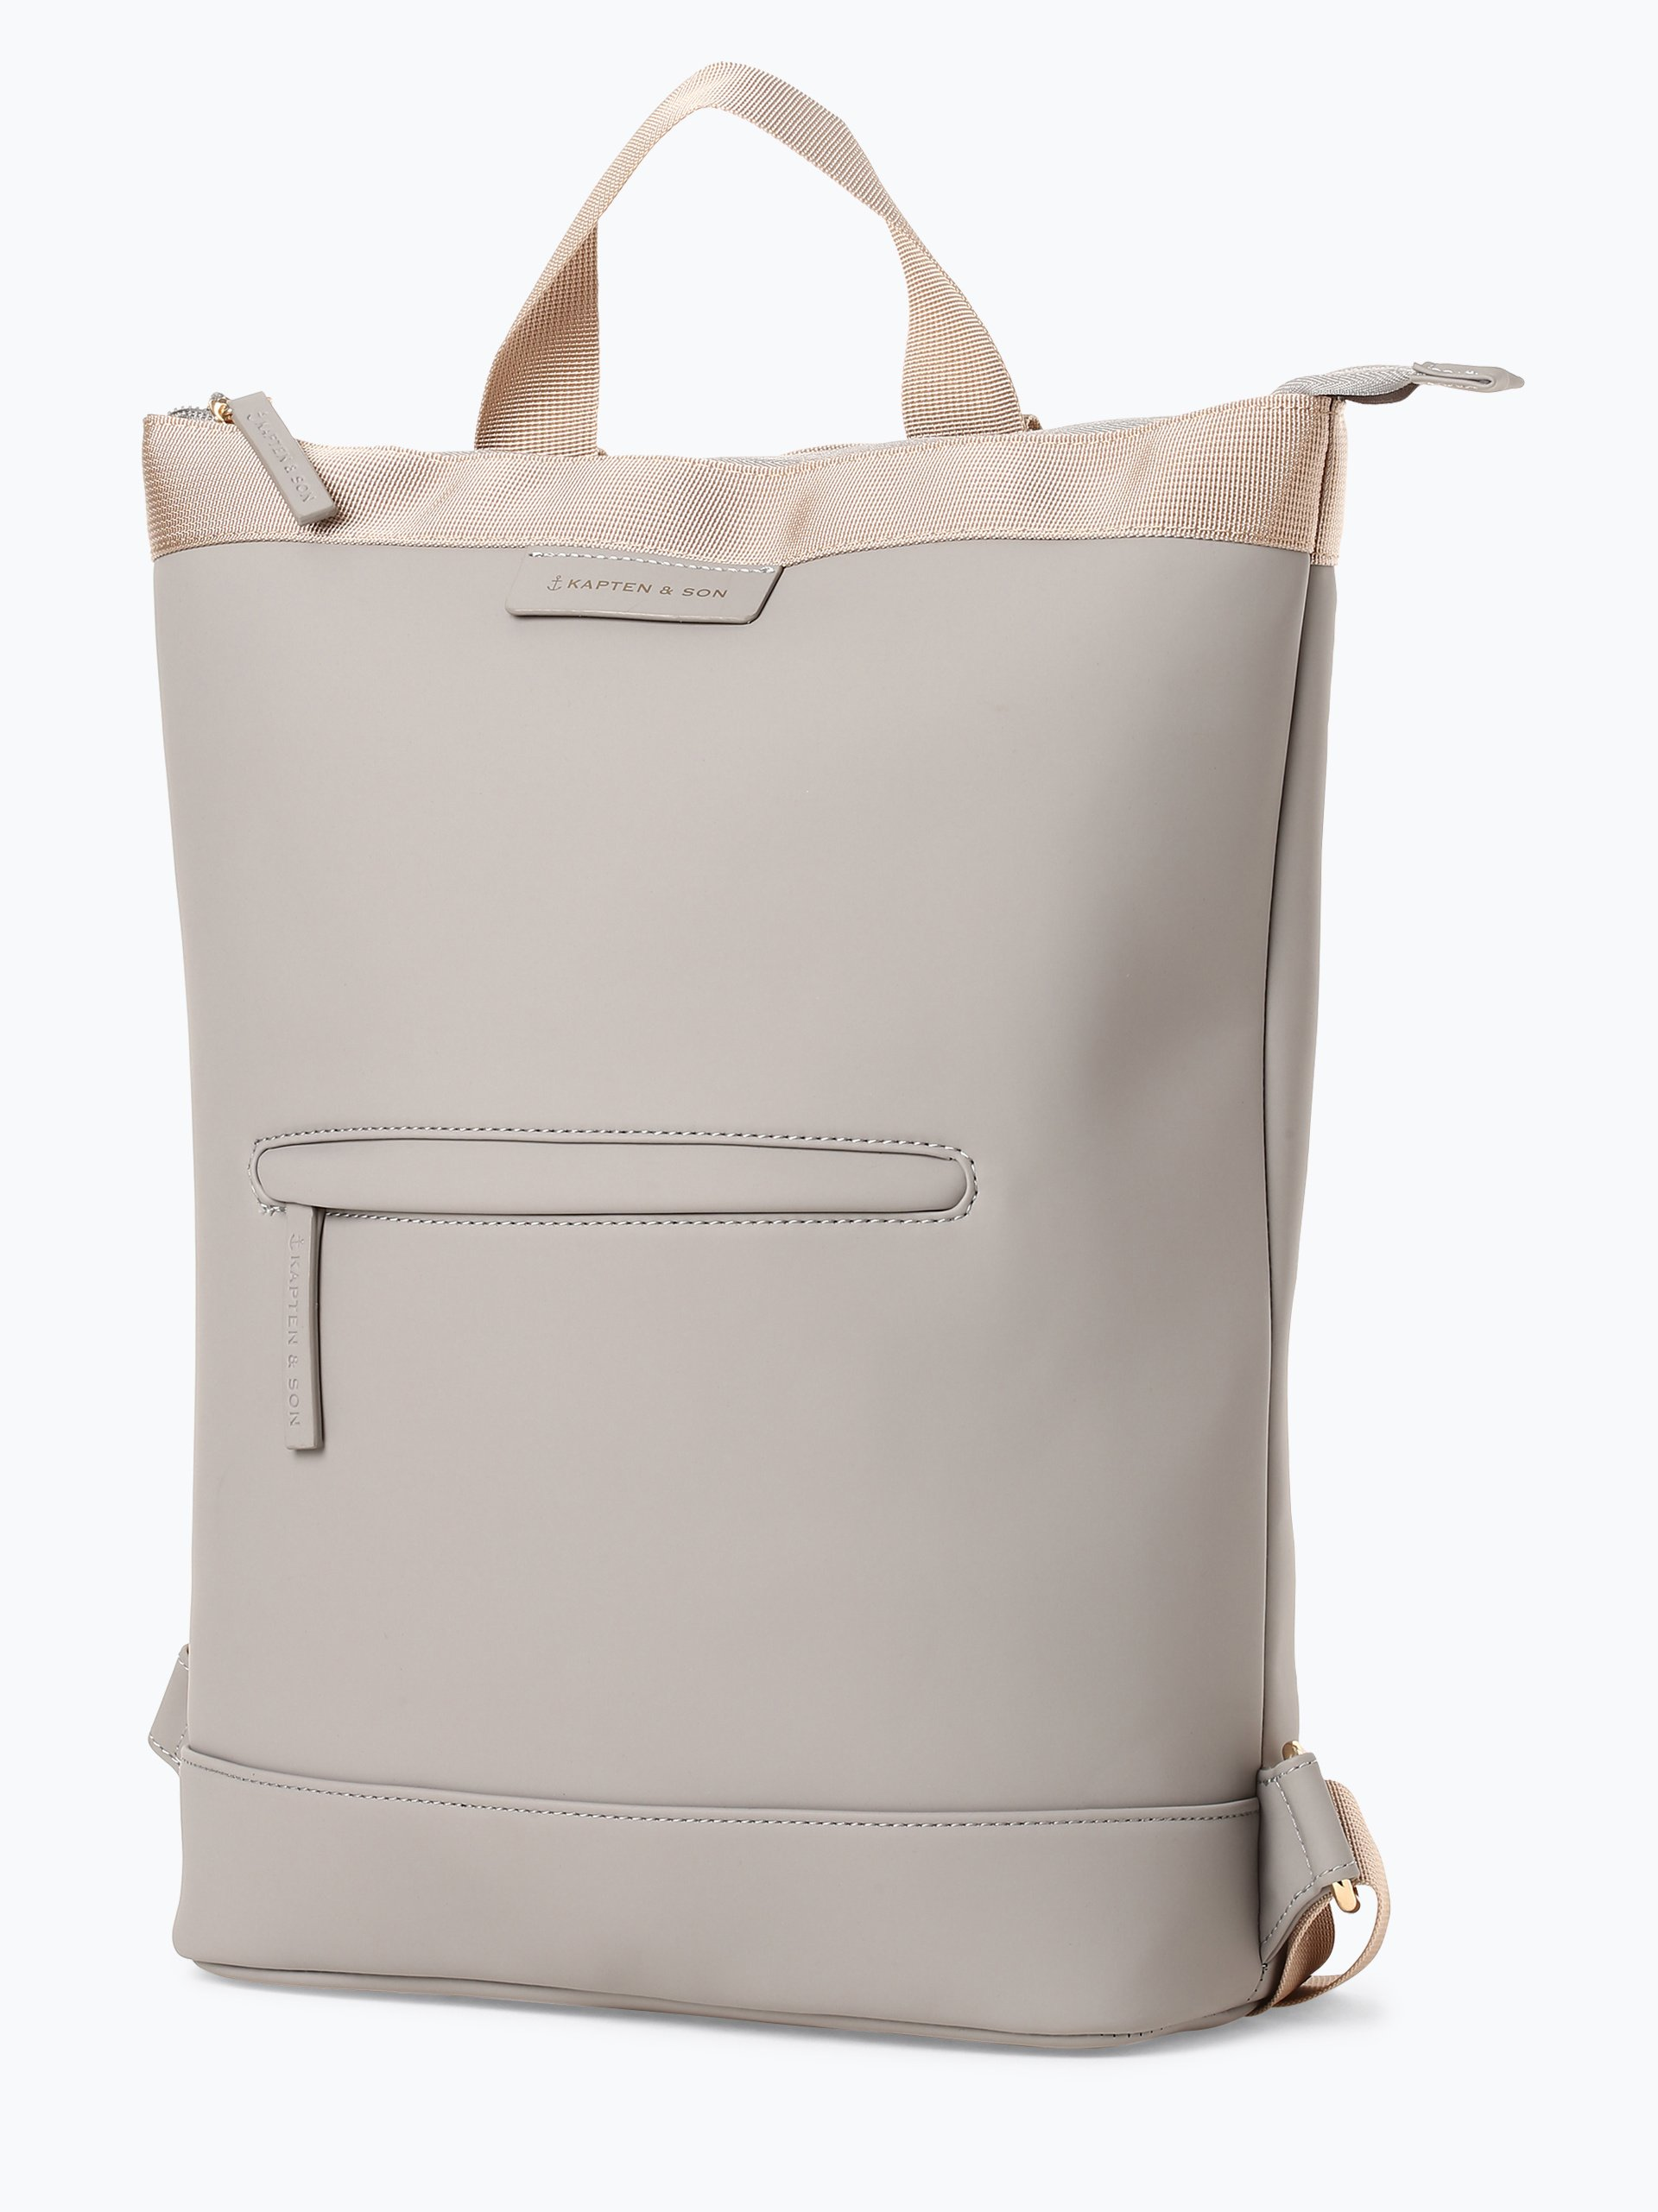 kapten and son damen rucksack ume grau taupe uni online kaufen peek und cloppenburg de. Black Bedroom Furniture Sets. Home Design Ideas